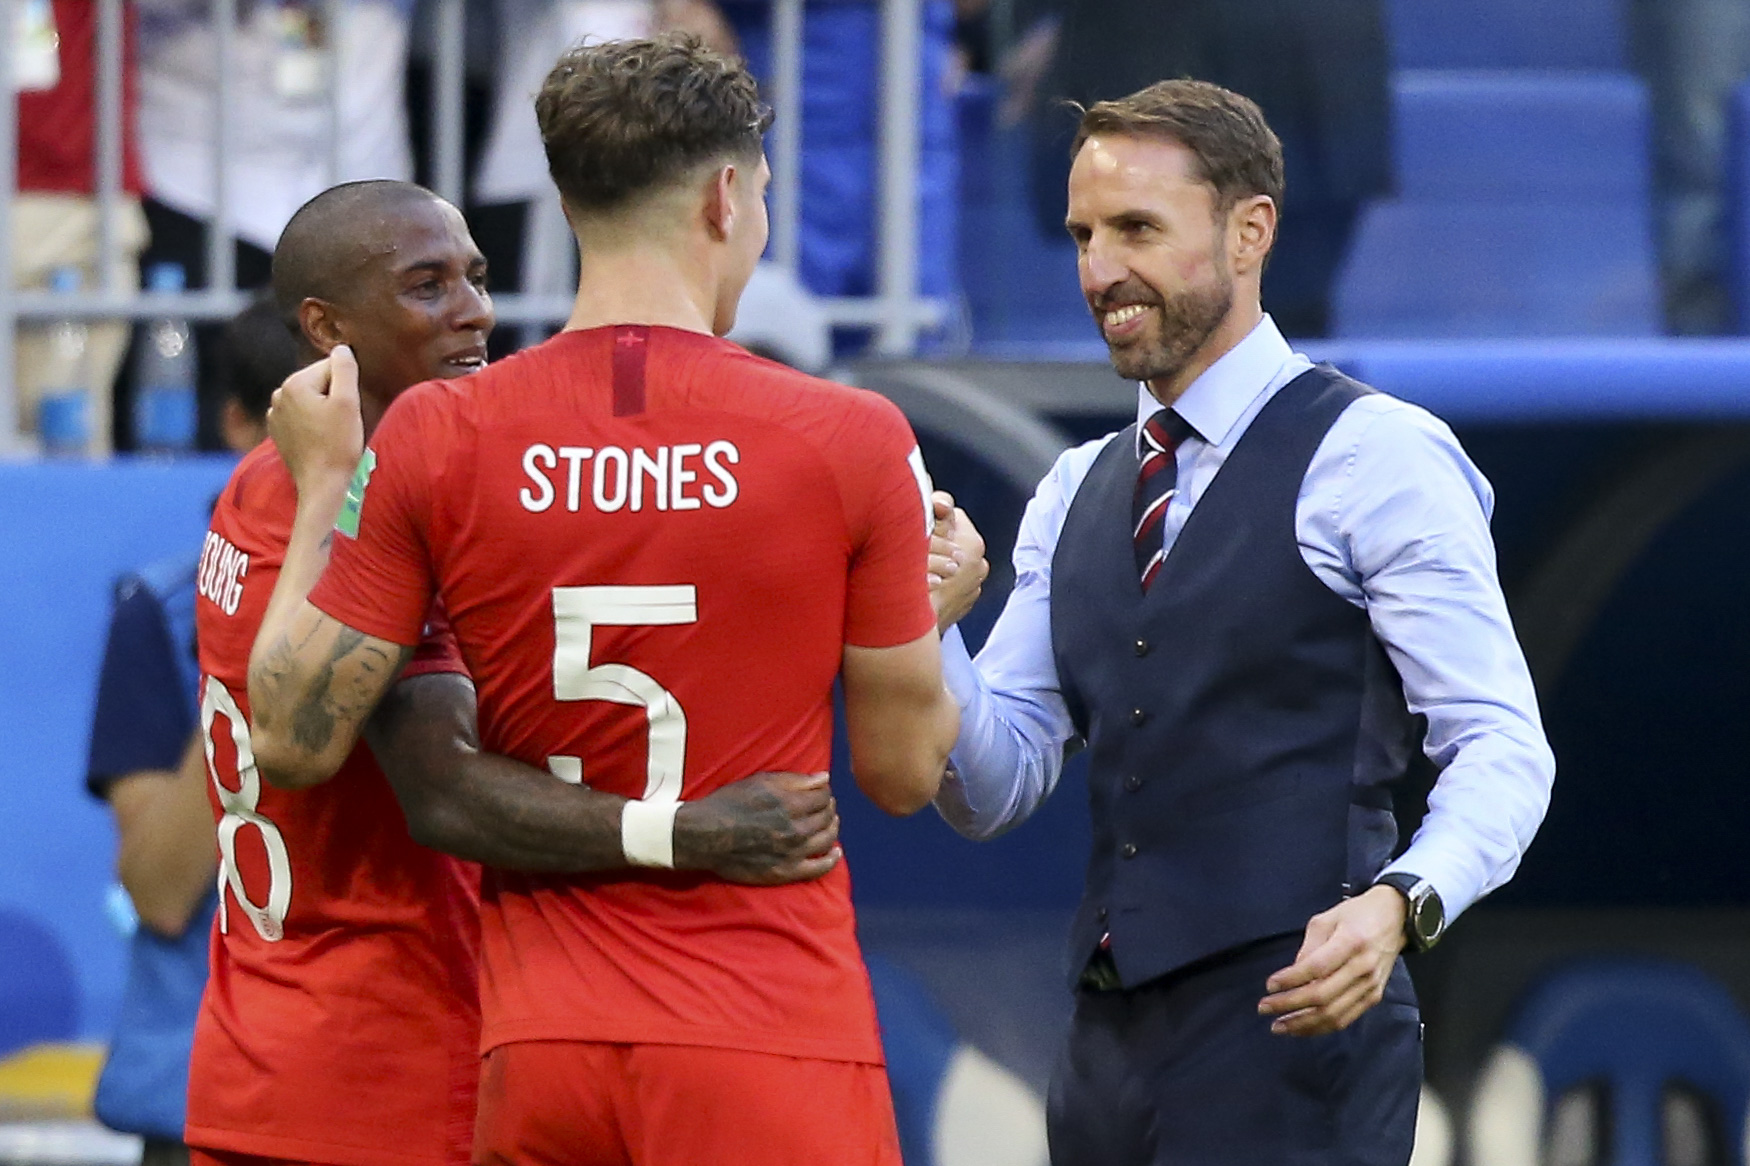 Football is definitely coming home, says Harry